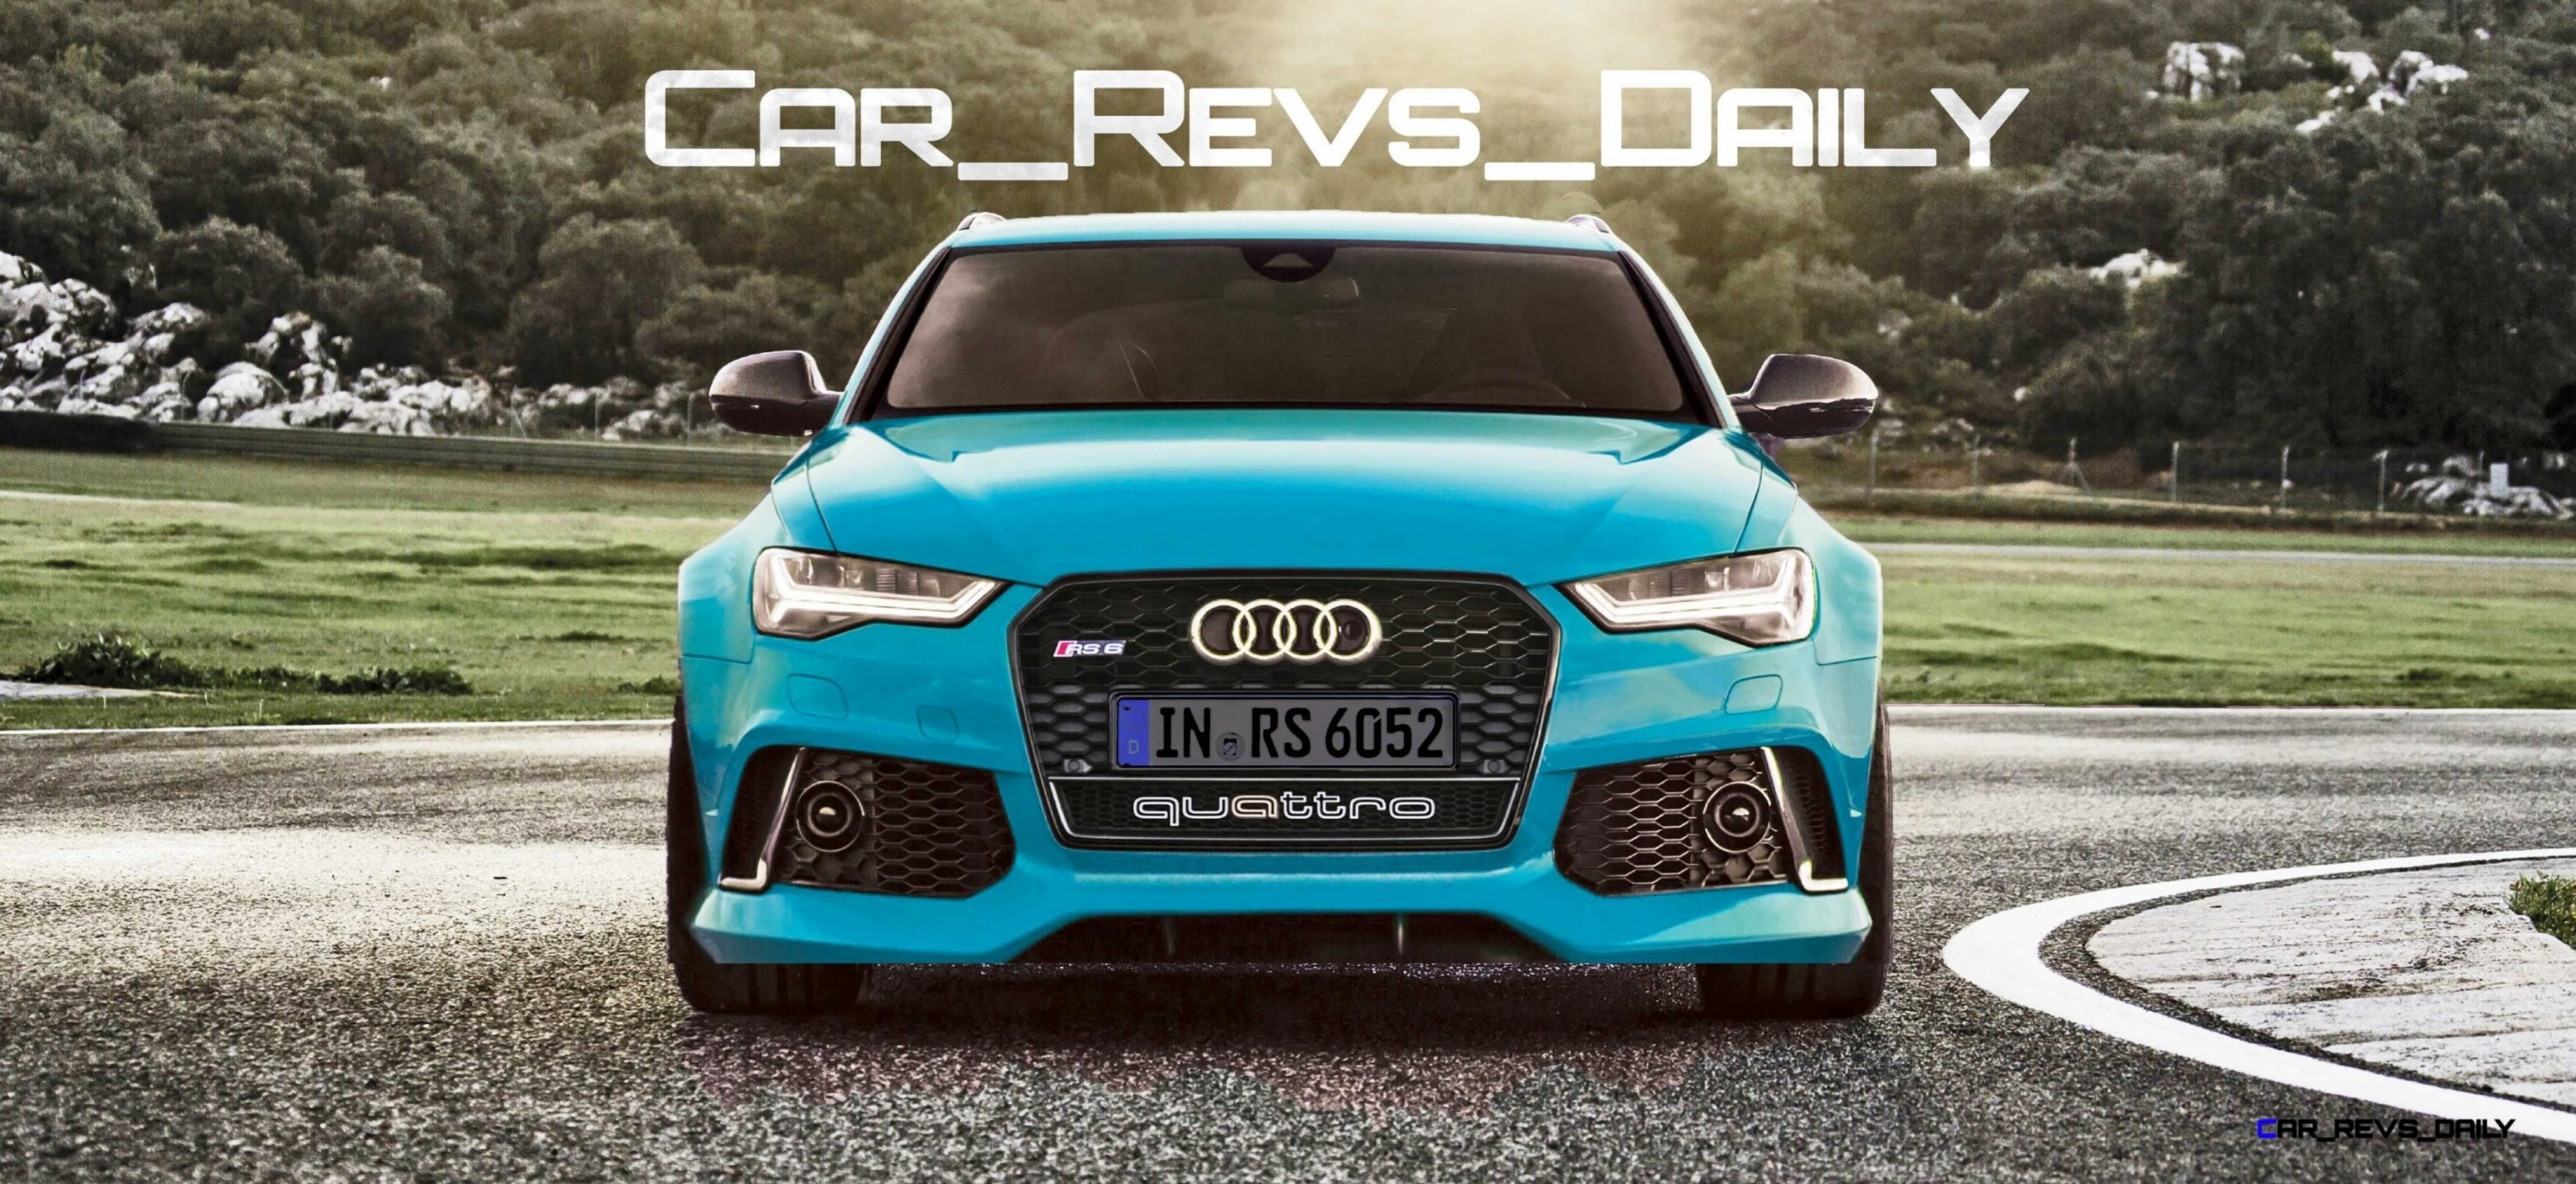 2016 Audi Rs6 Avant Performance And Rs7 Sportback Engine Diagrams Debut New Spec 45hp 45mph 190mph Vmax